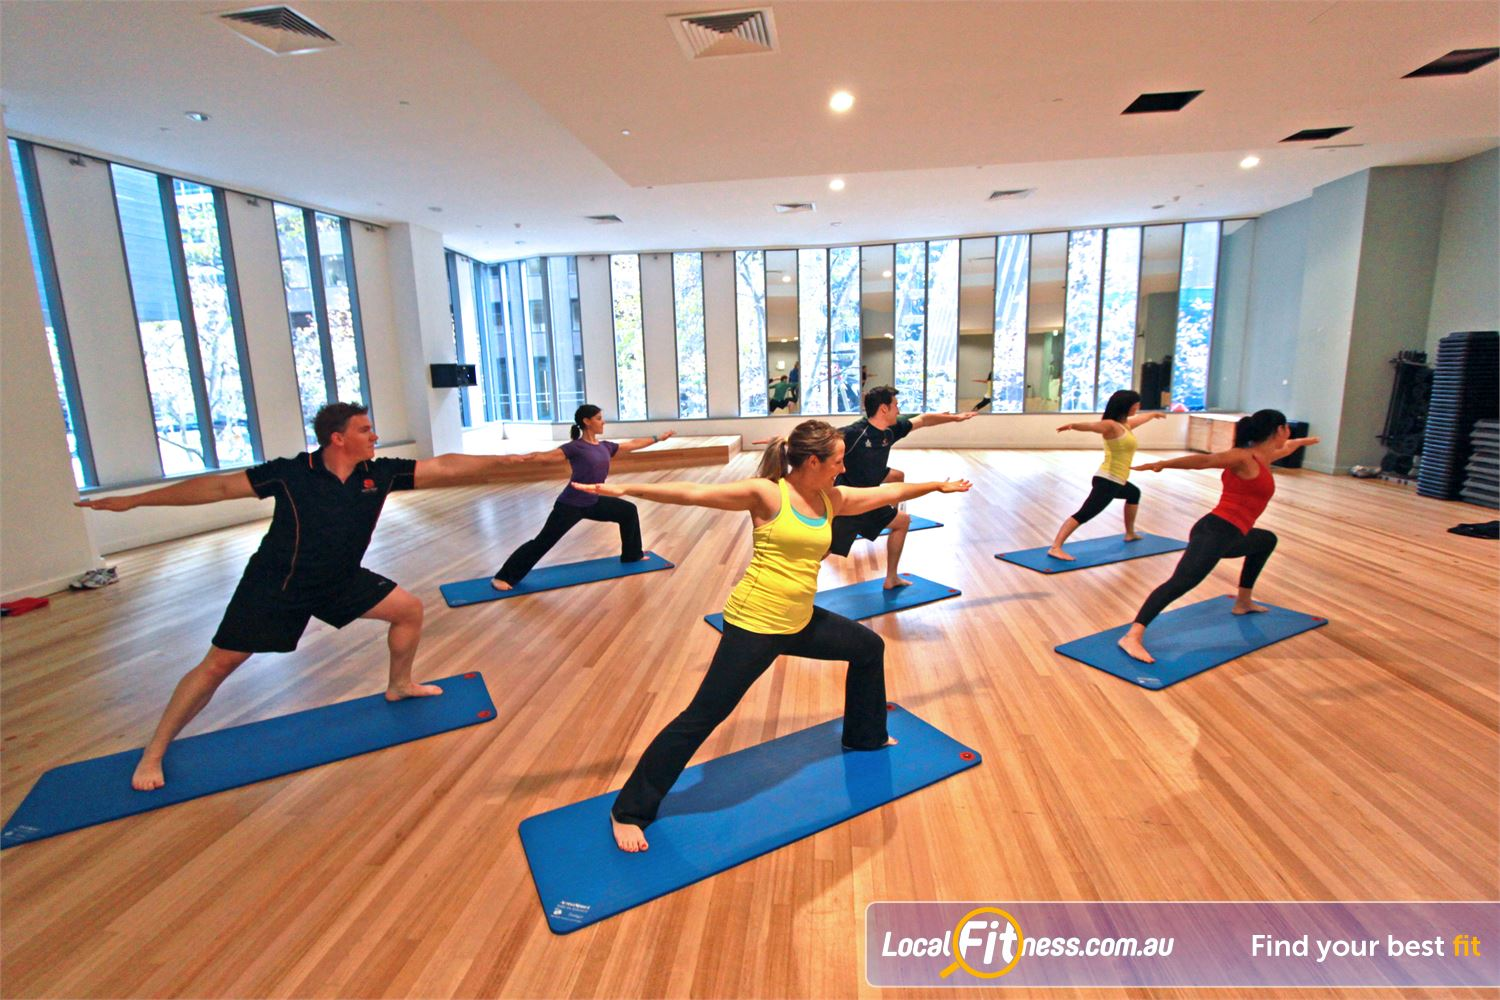 South Pacific Health Clubs Near East Melbourne The spacious Melbourne group fitness studio.